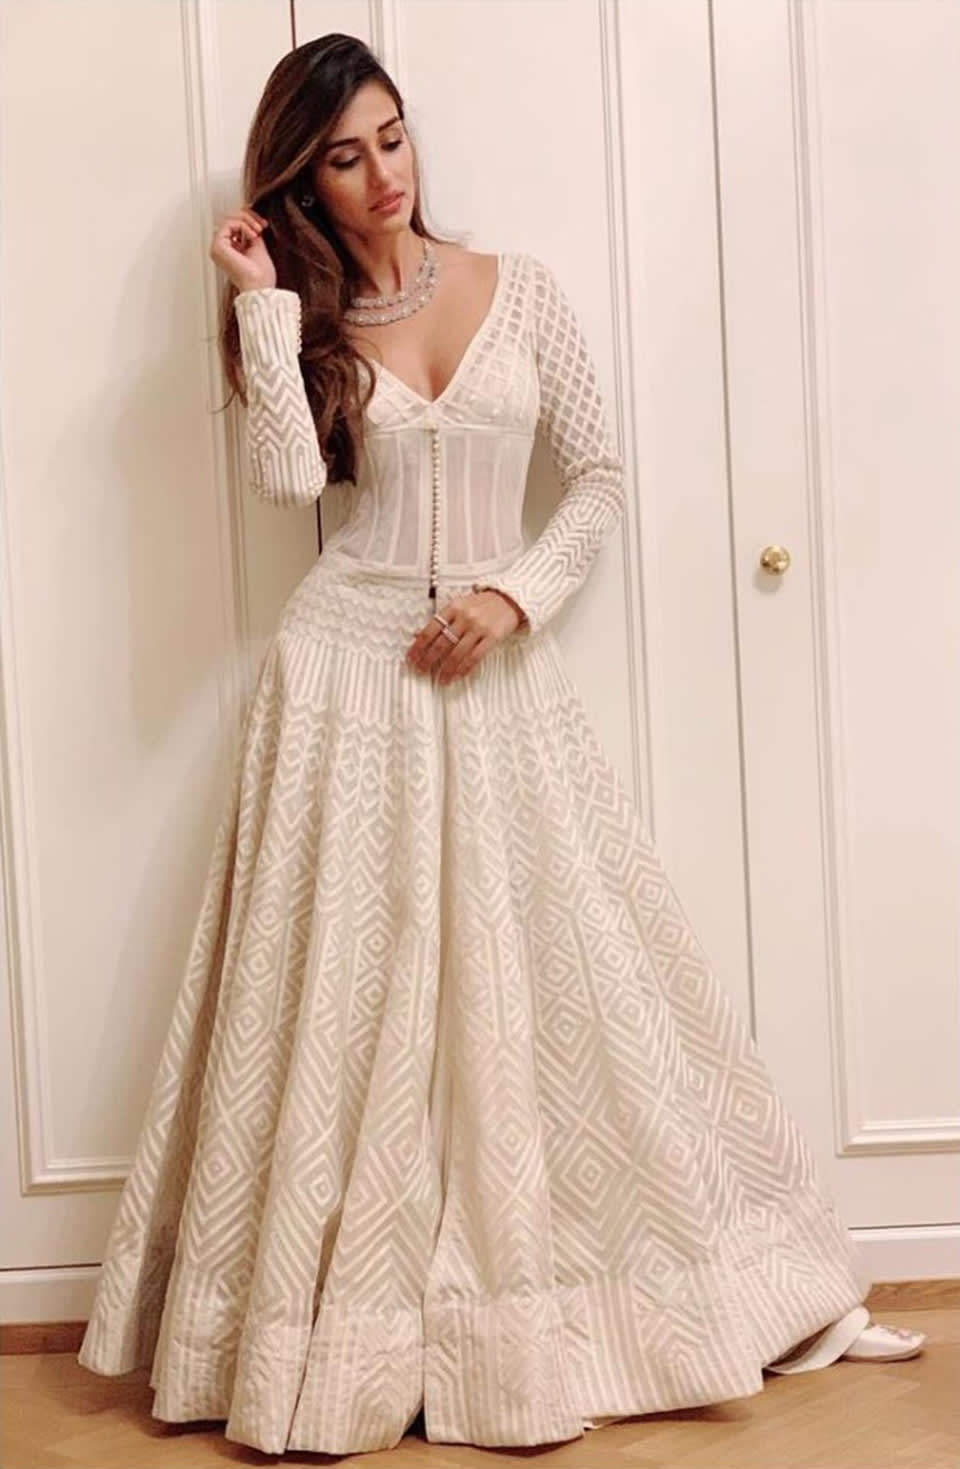 Dazzlerr: Planning to Wear White this Wedding Season? Check these Celeb Approved Ways